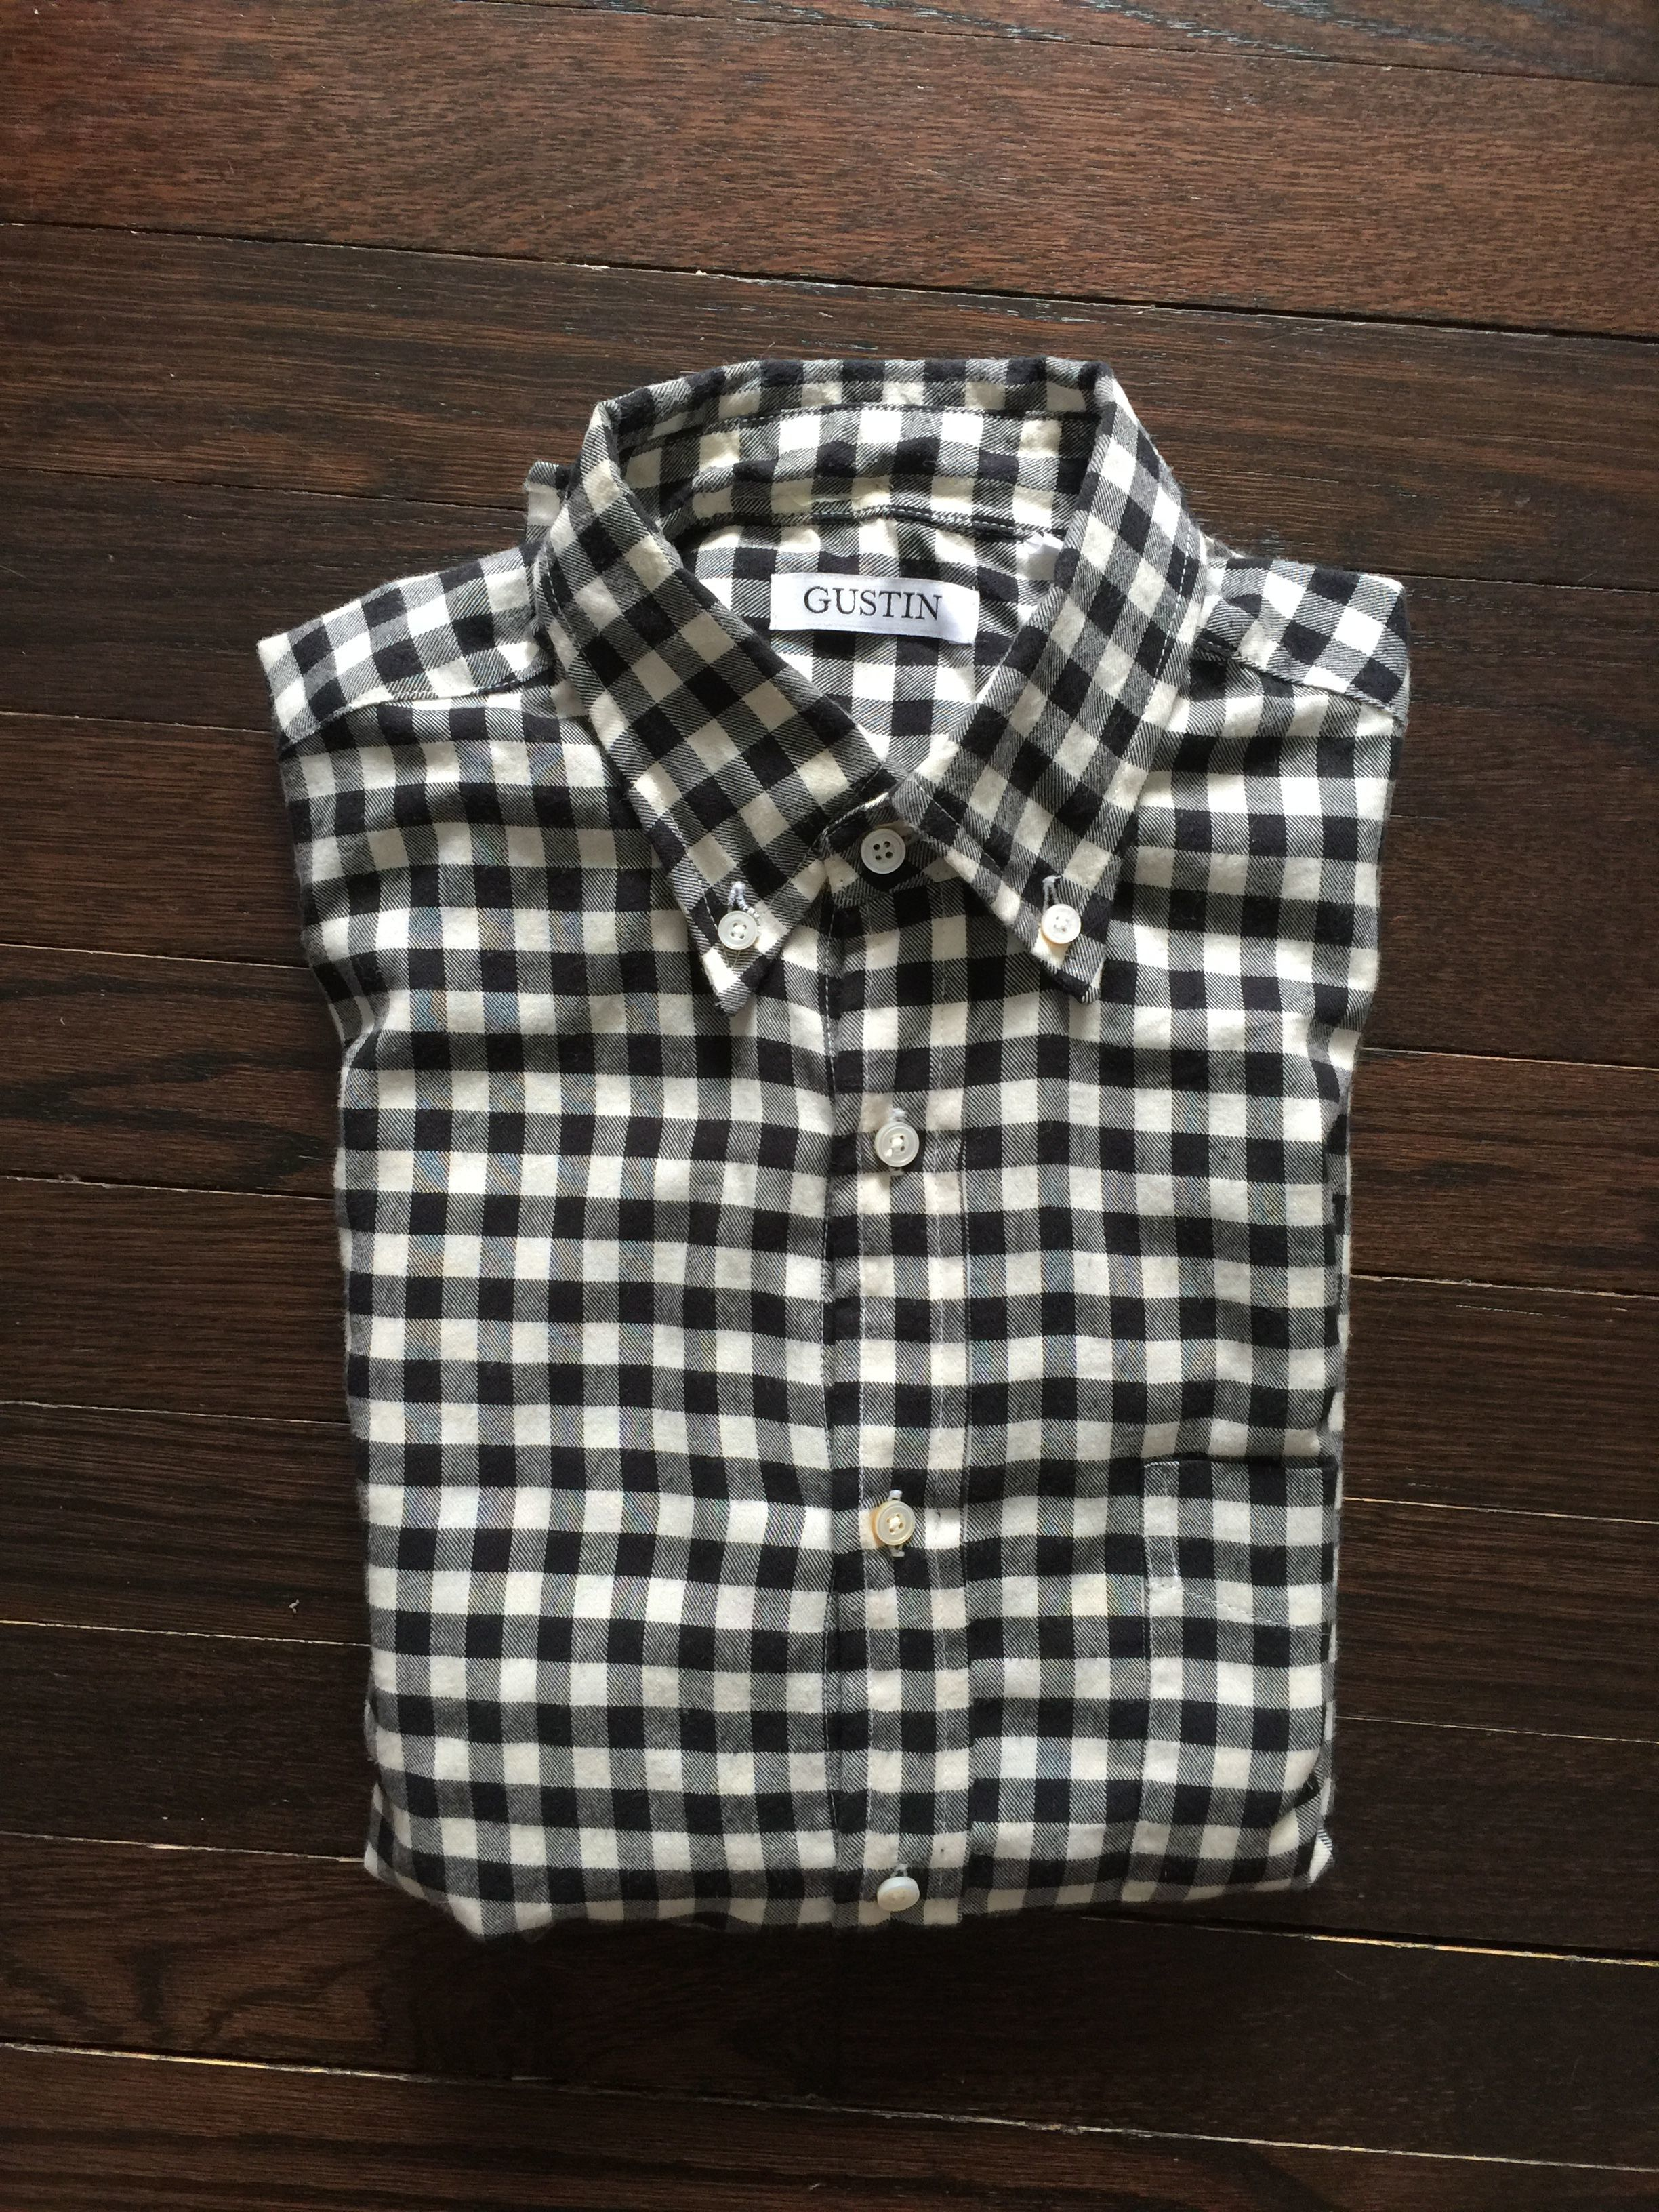 JR Magat's photos in Gustin button-down shirt sale: plaids, ginghams, checks - size Classic Small